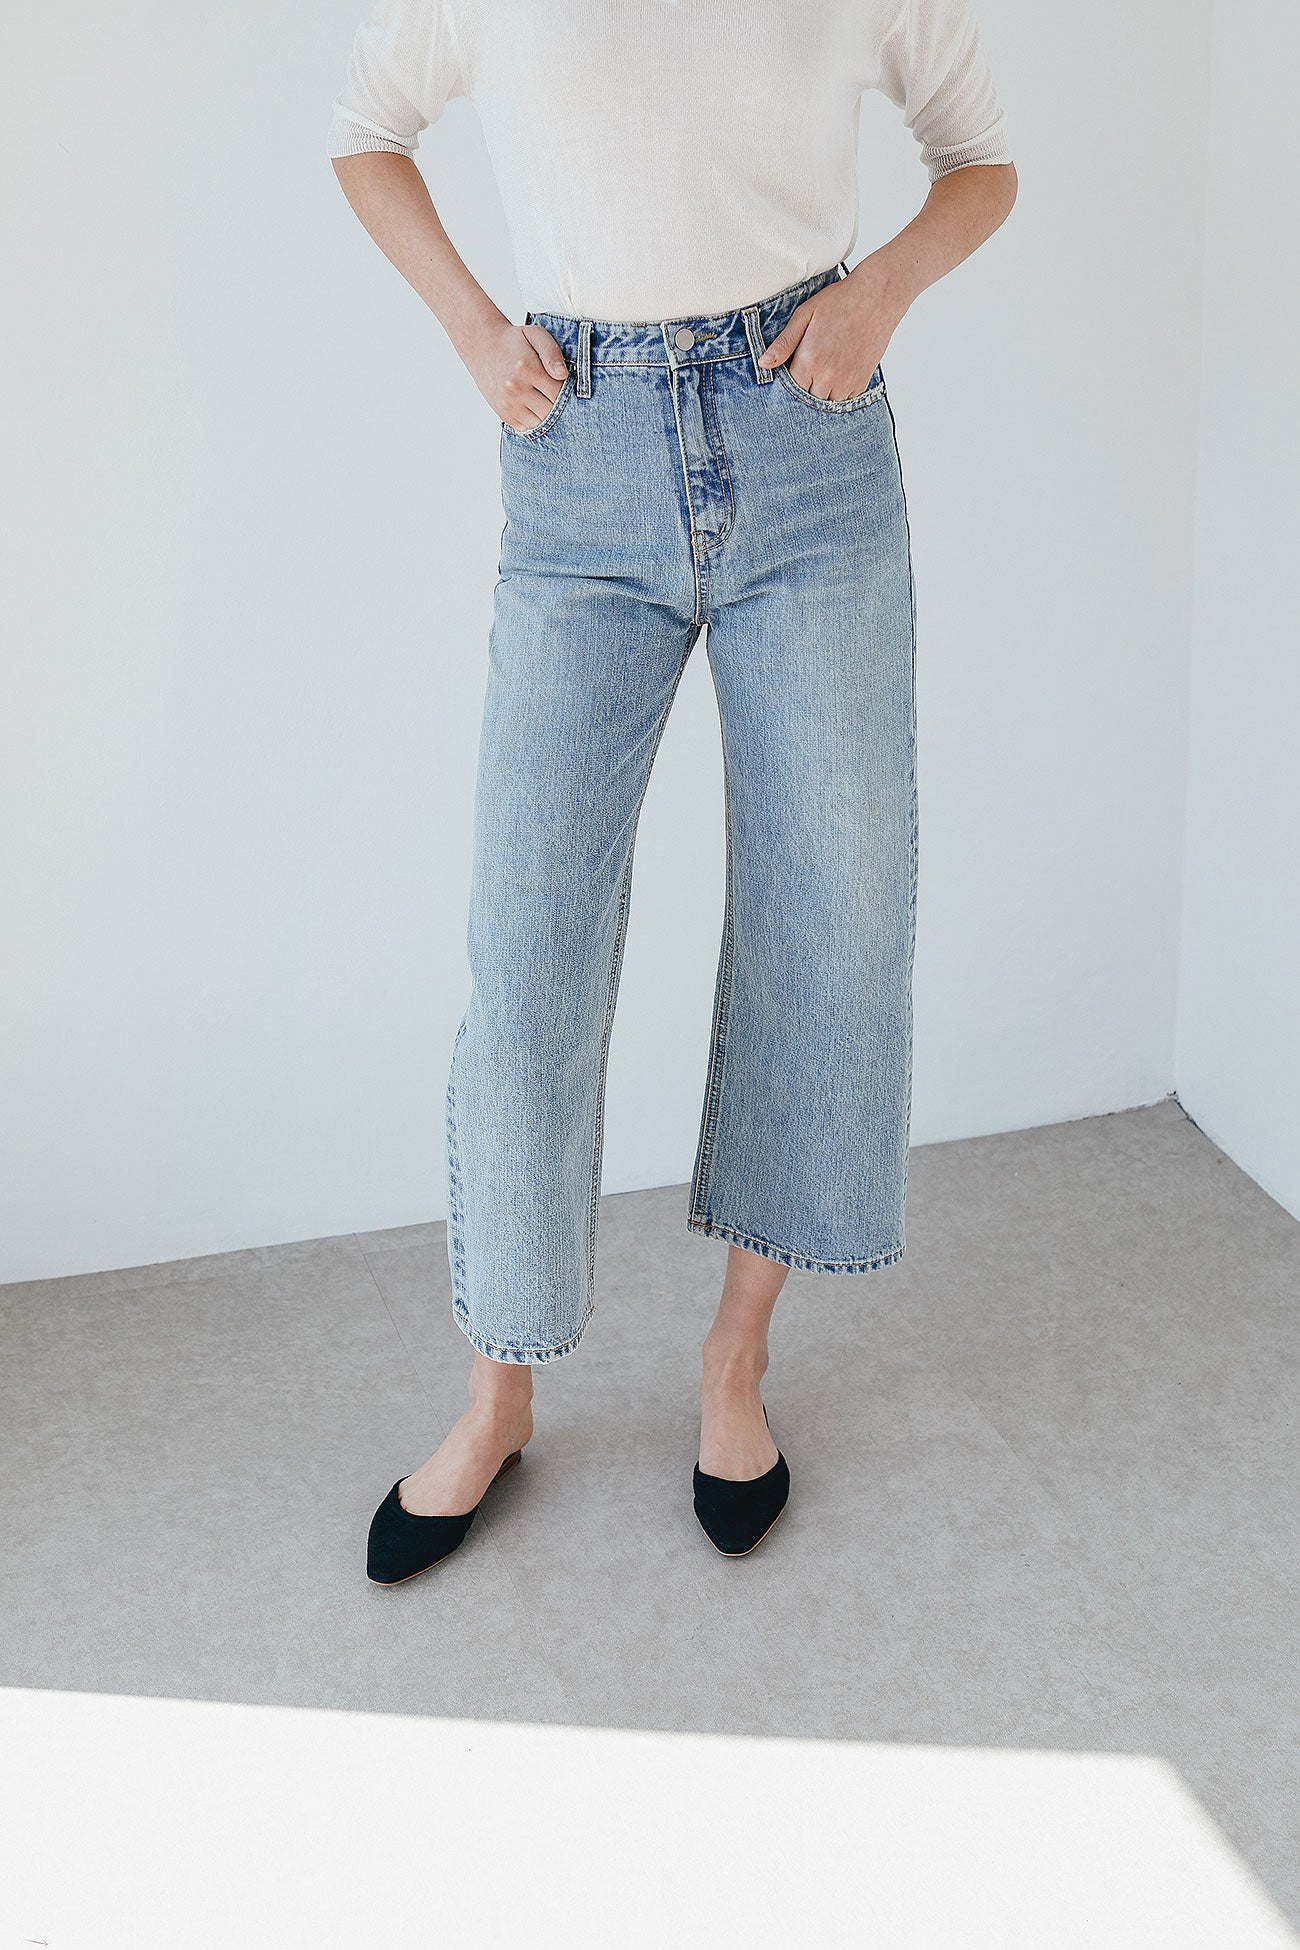 LOTTIE LIGHT WASH DENIM